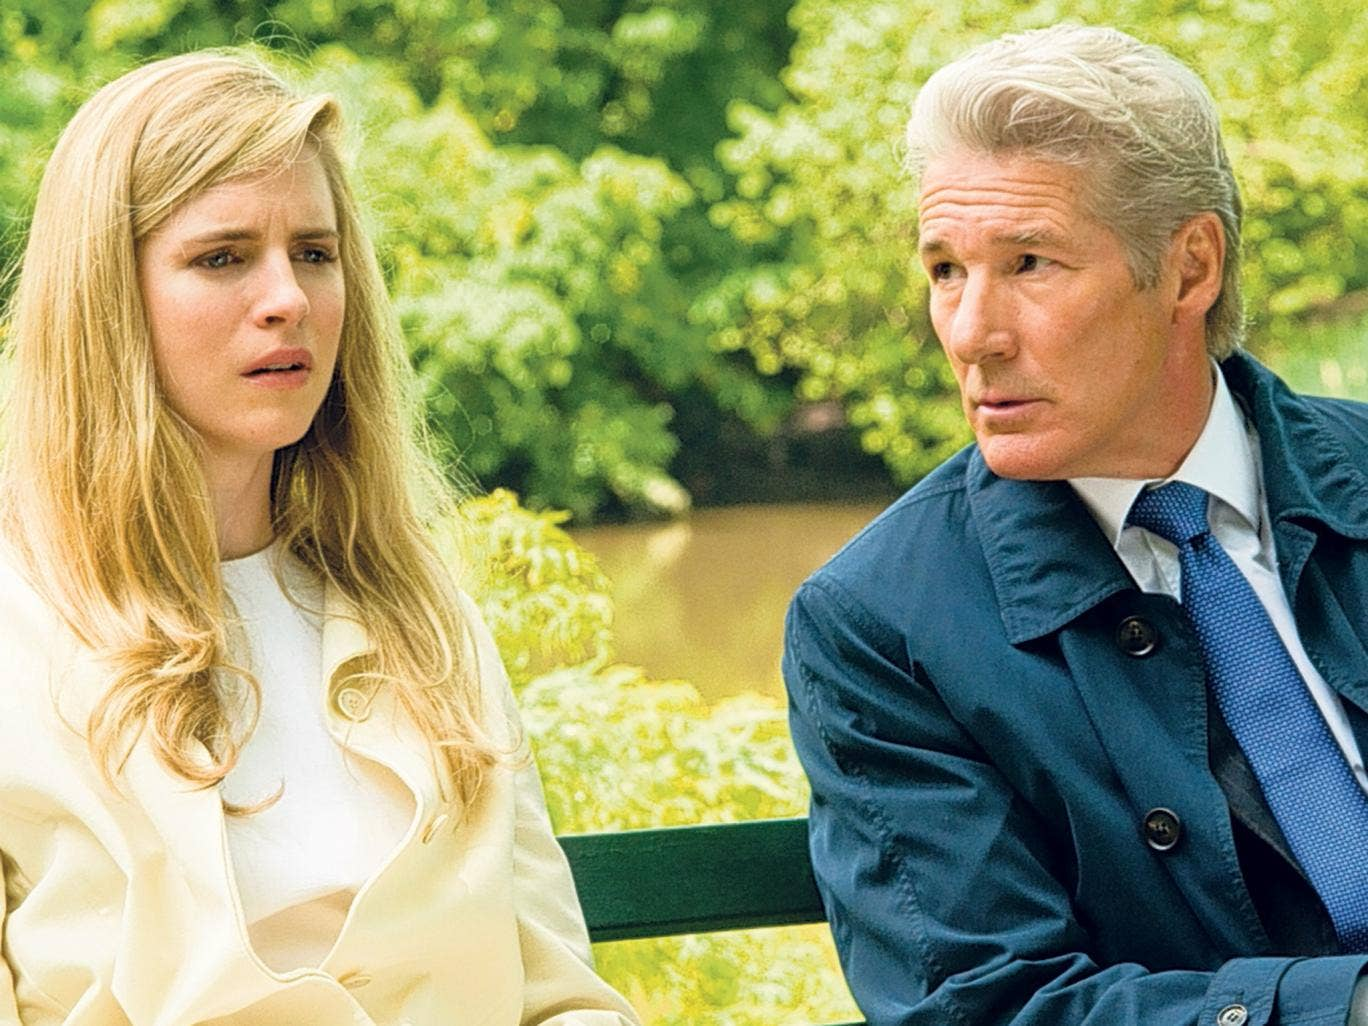 Family business: Richard Gere and Brit Marling play father and daughter in the drama ''Arbitrage'